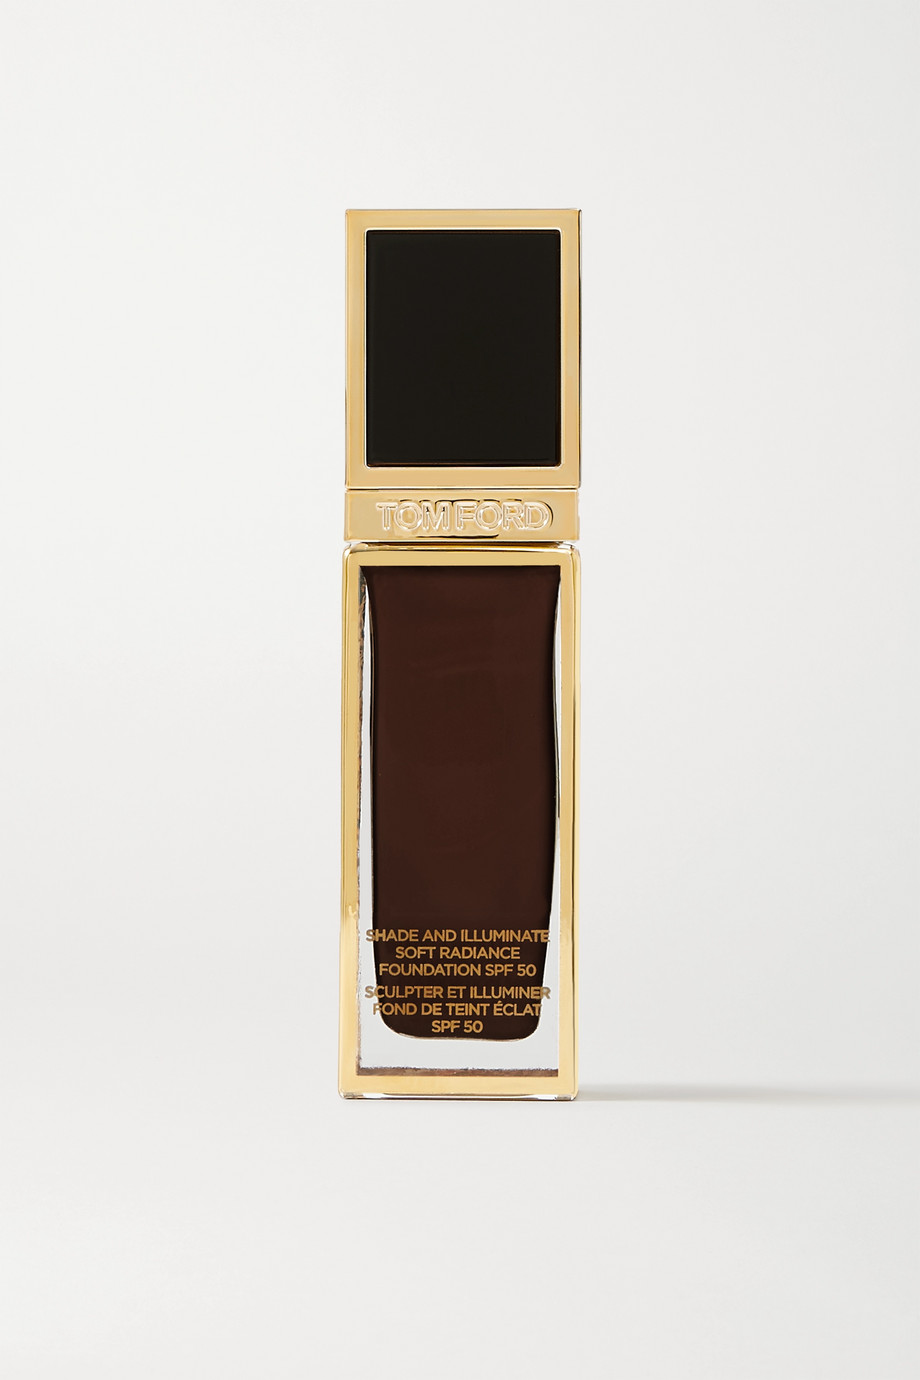 TOM FORD BEAUTY Shade and Illuminate Soft Radiance Foundation SPF50 - 12.0 Macasar, 30ml